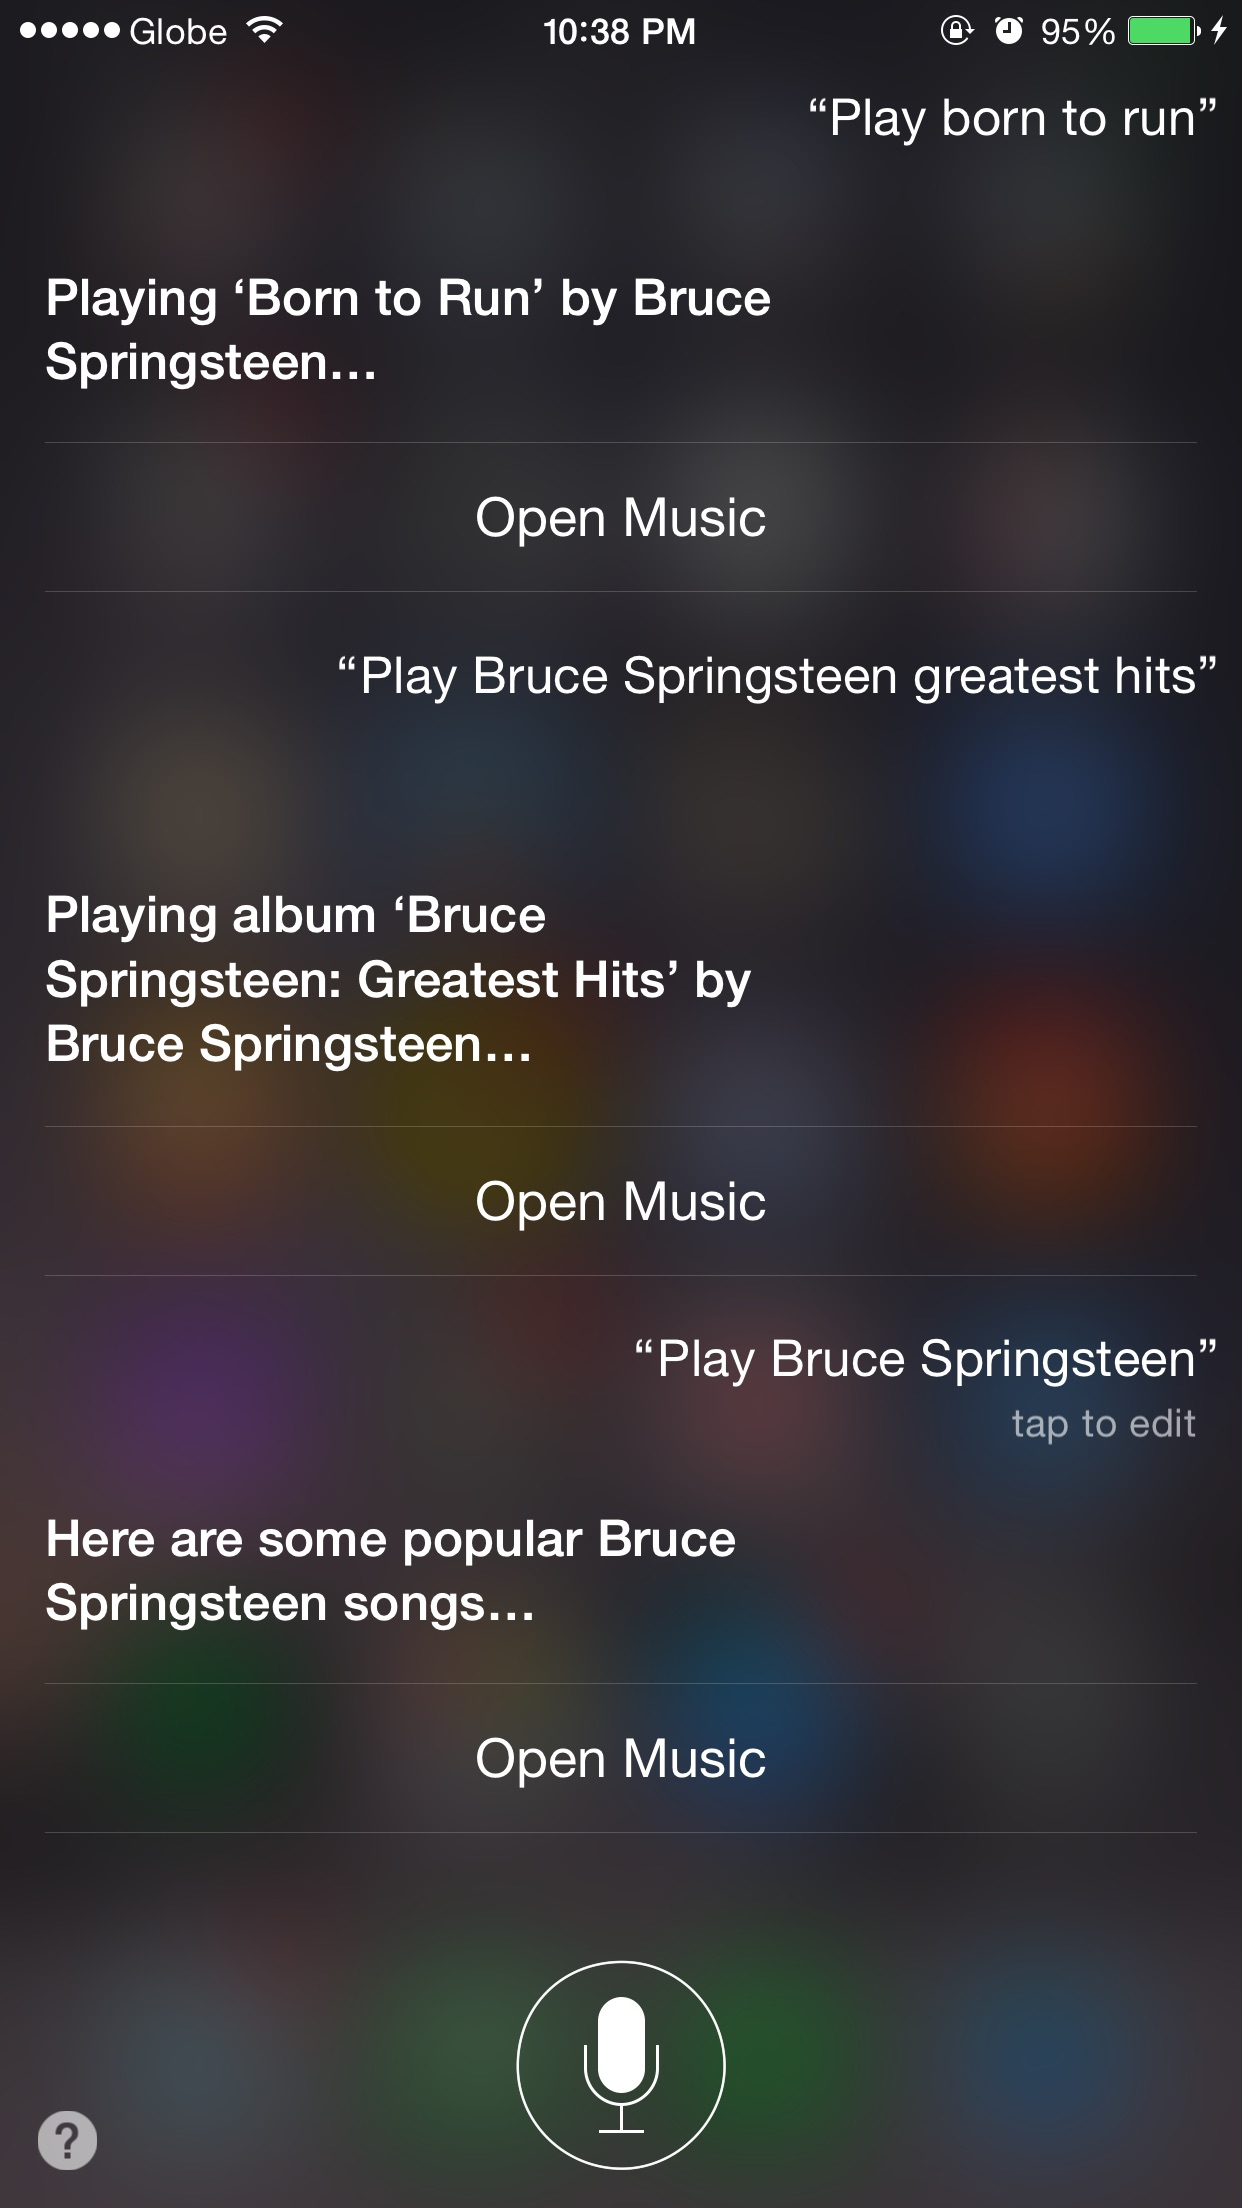 Siri, I want some Springsteen